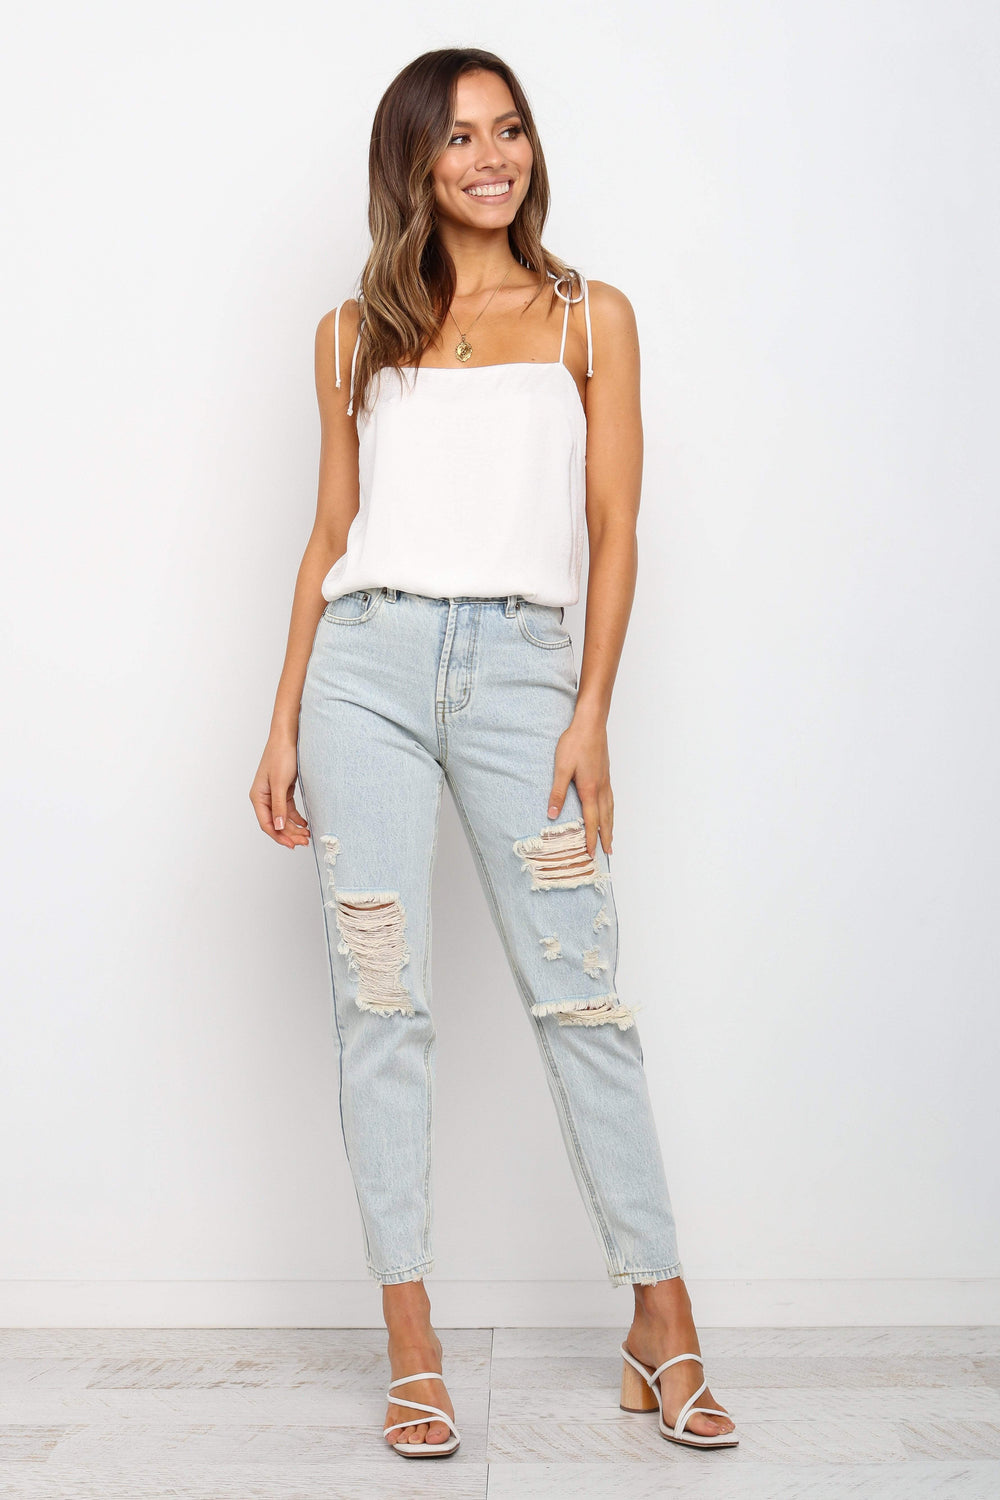 Petal and Pup USA BOTTOMS Bancroft Jeans - Light Wash